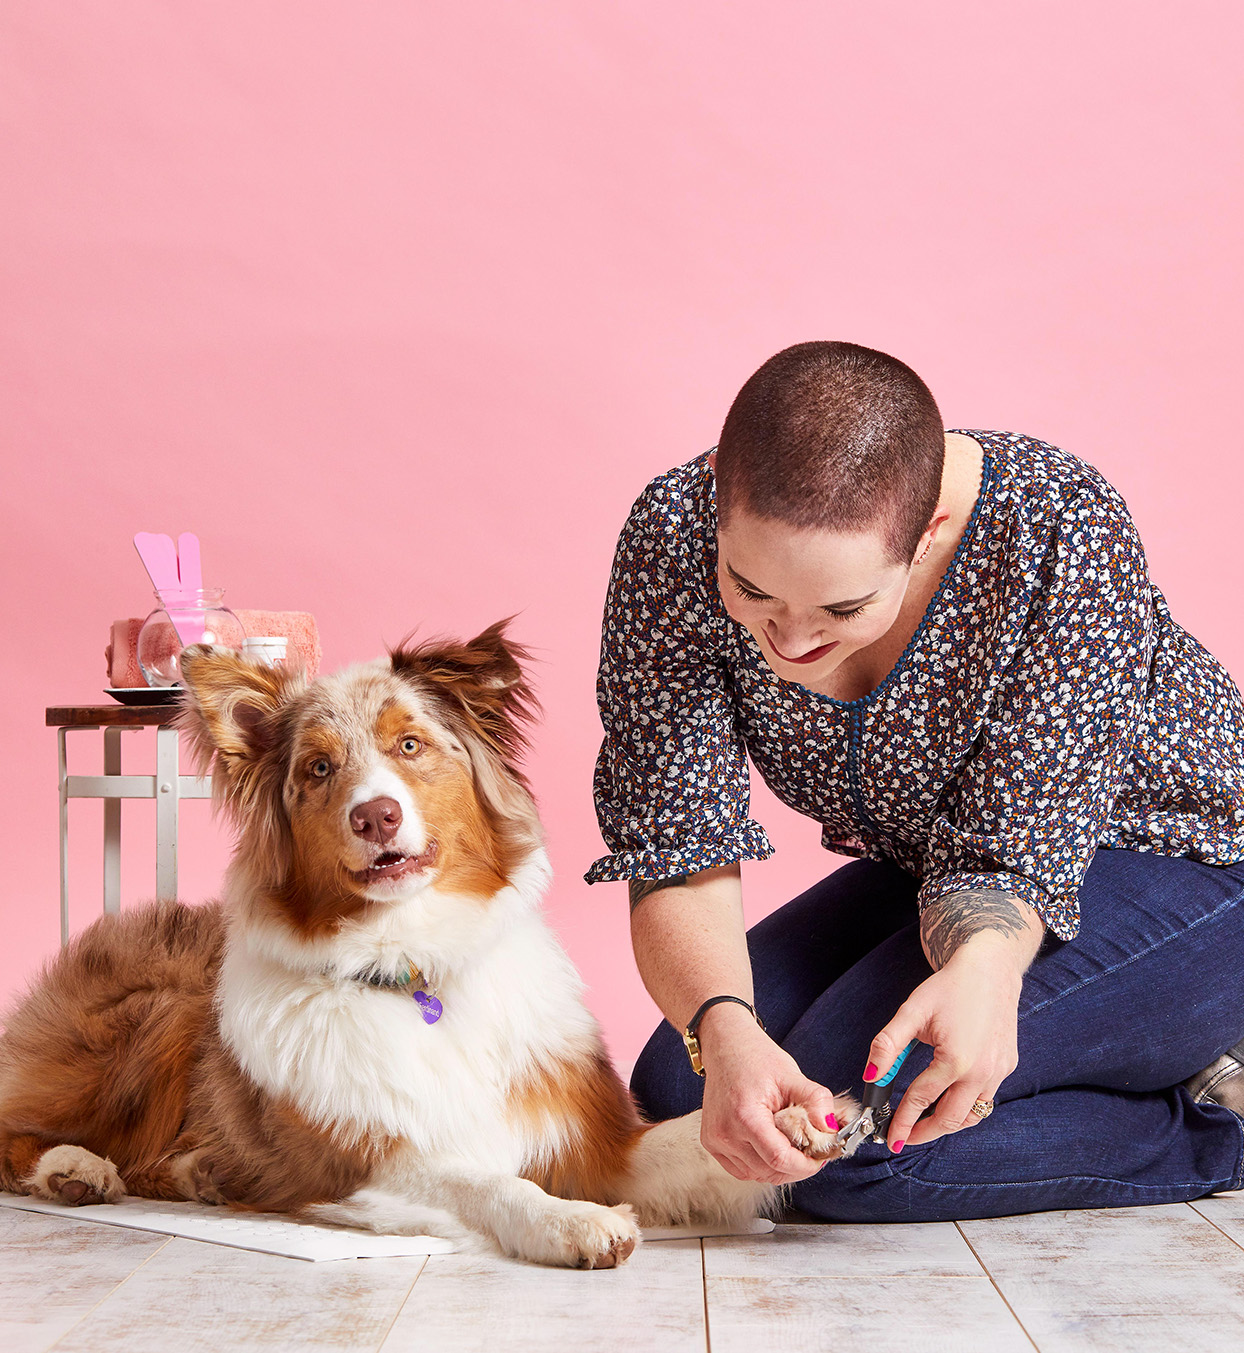 woman clipping dog's toenails